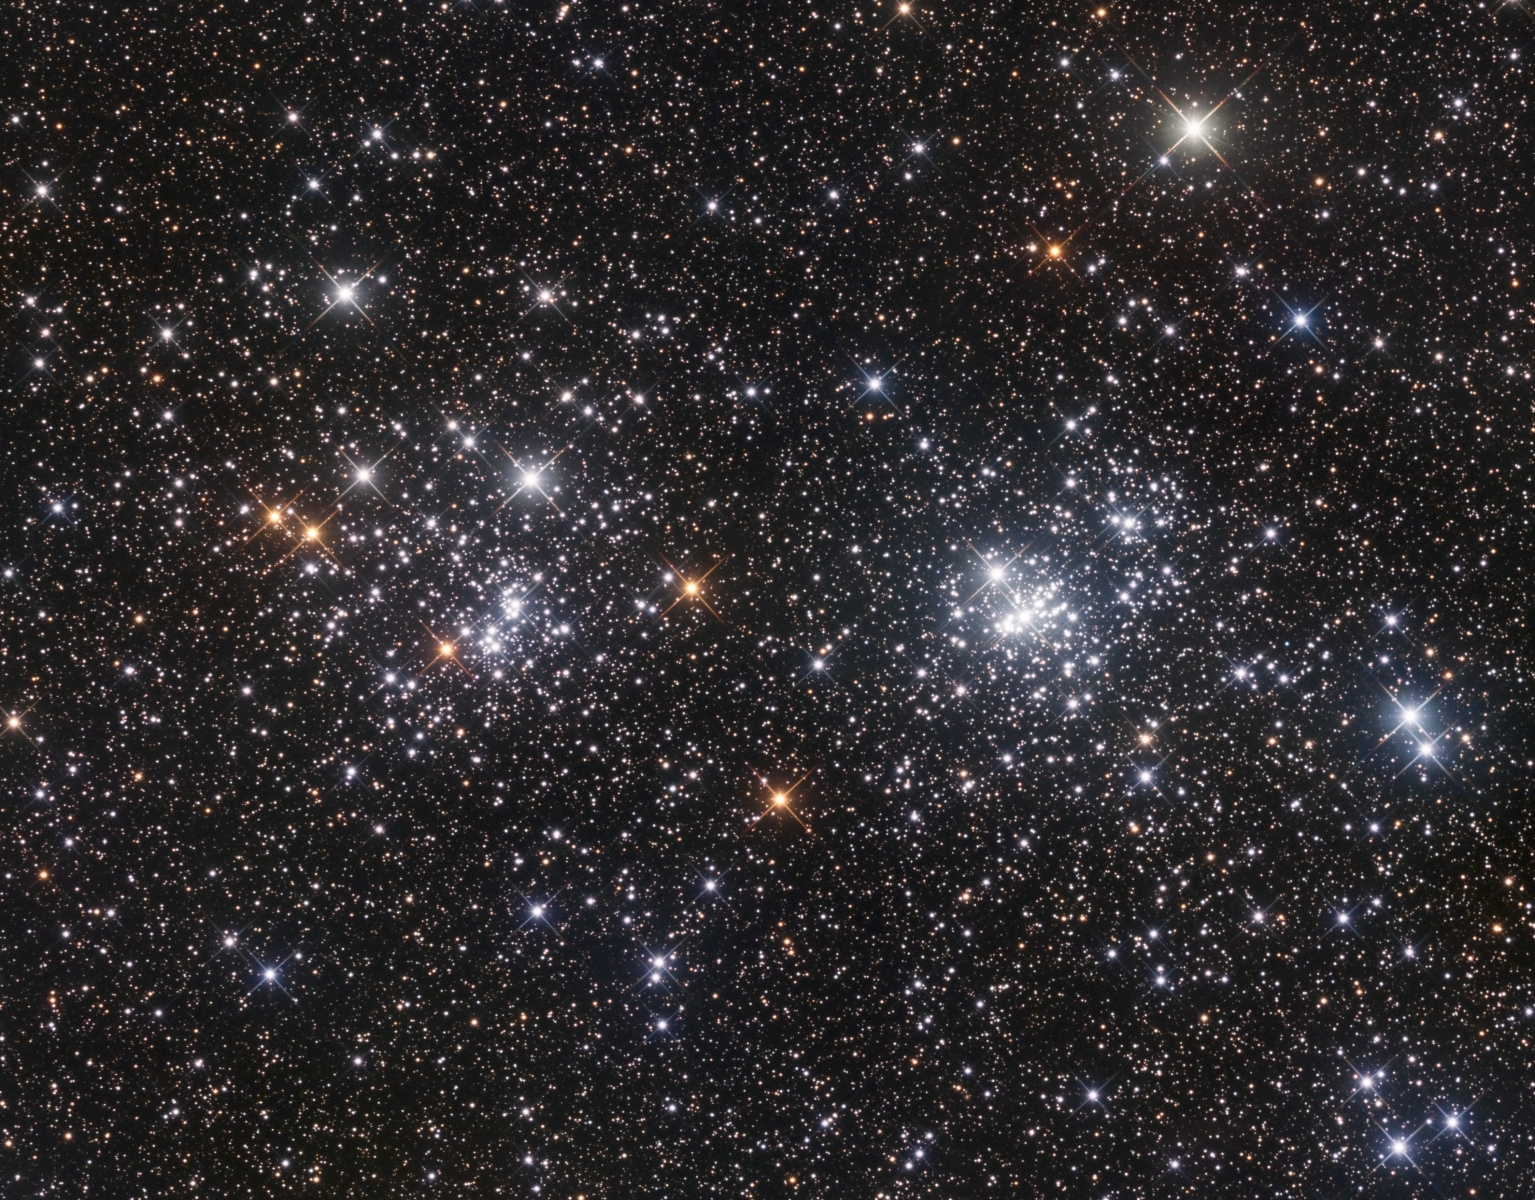 double-cluster-crop-11hr30m-rgb-g3-16200-first-light-web-sept-2016